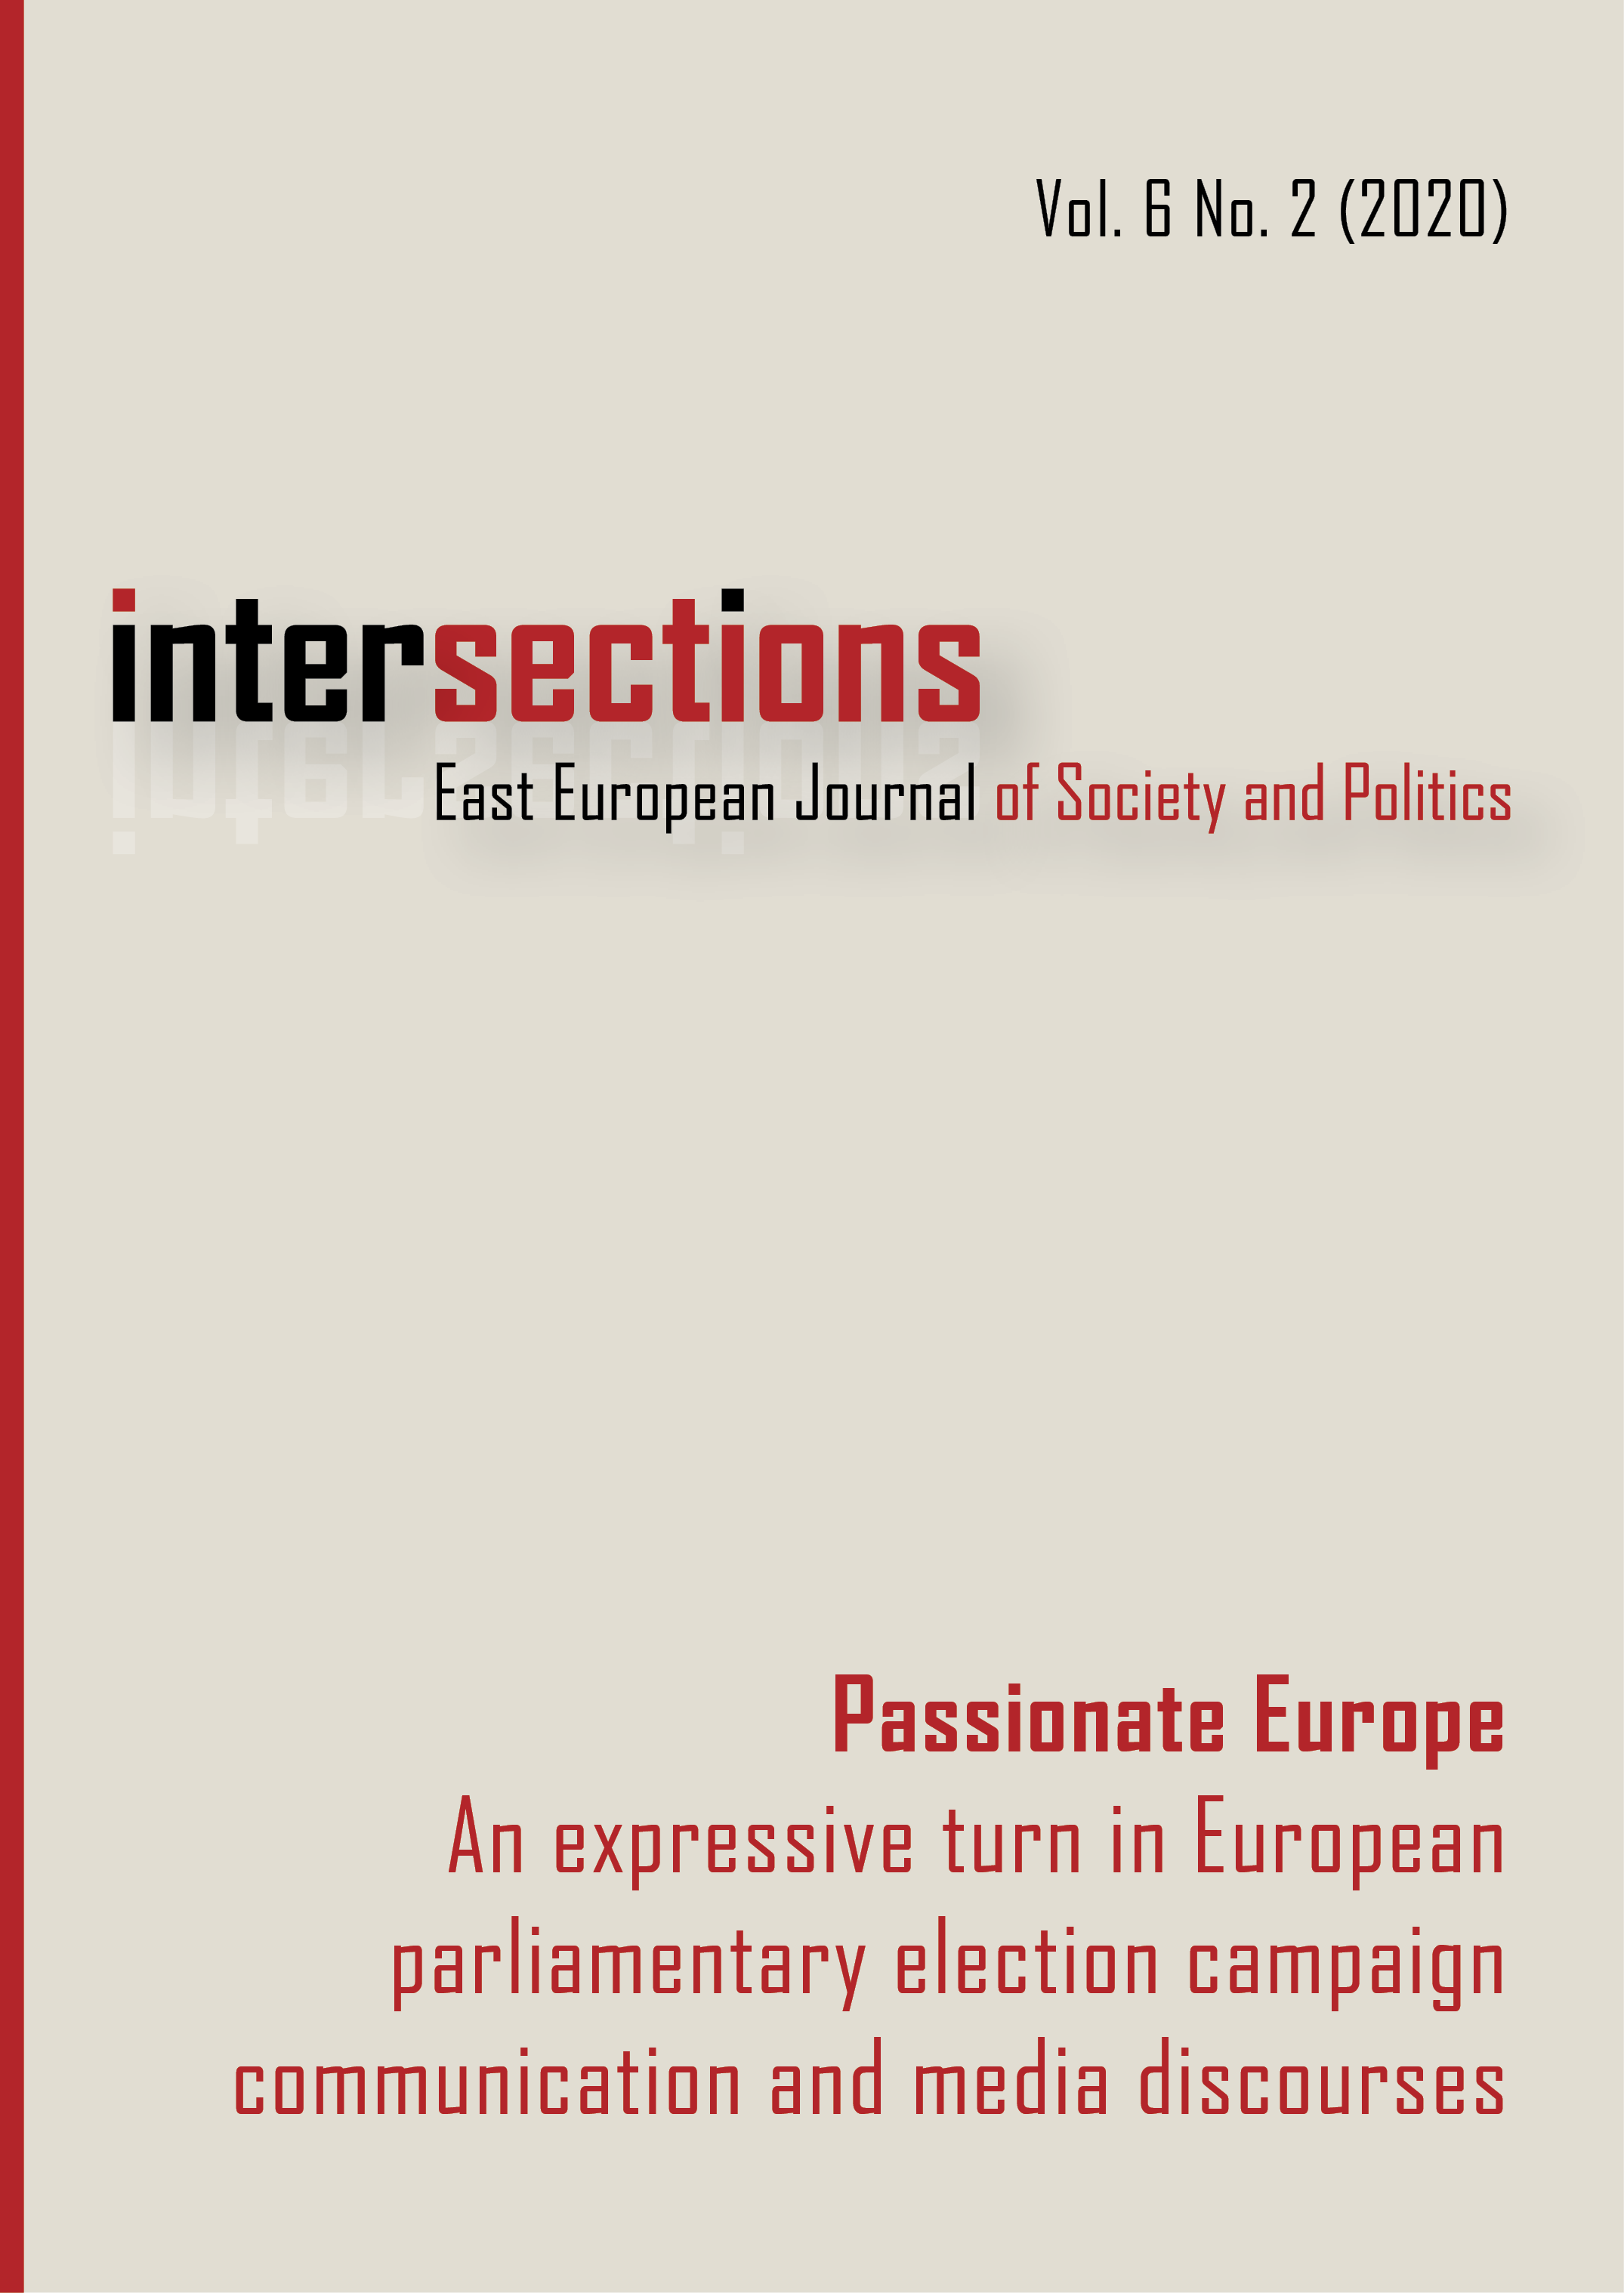 View Vol. 6 No. 2 (2020): Passionate Europe. An expressive turn in European parliamentary election campaign communication and media discourses